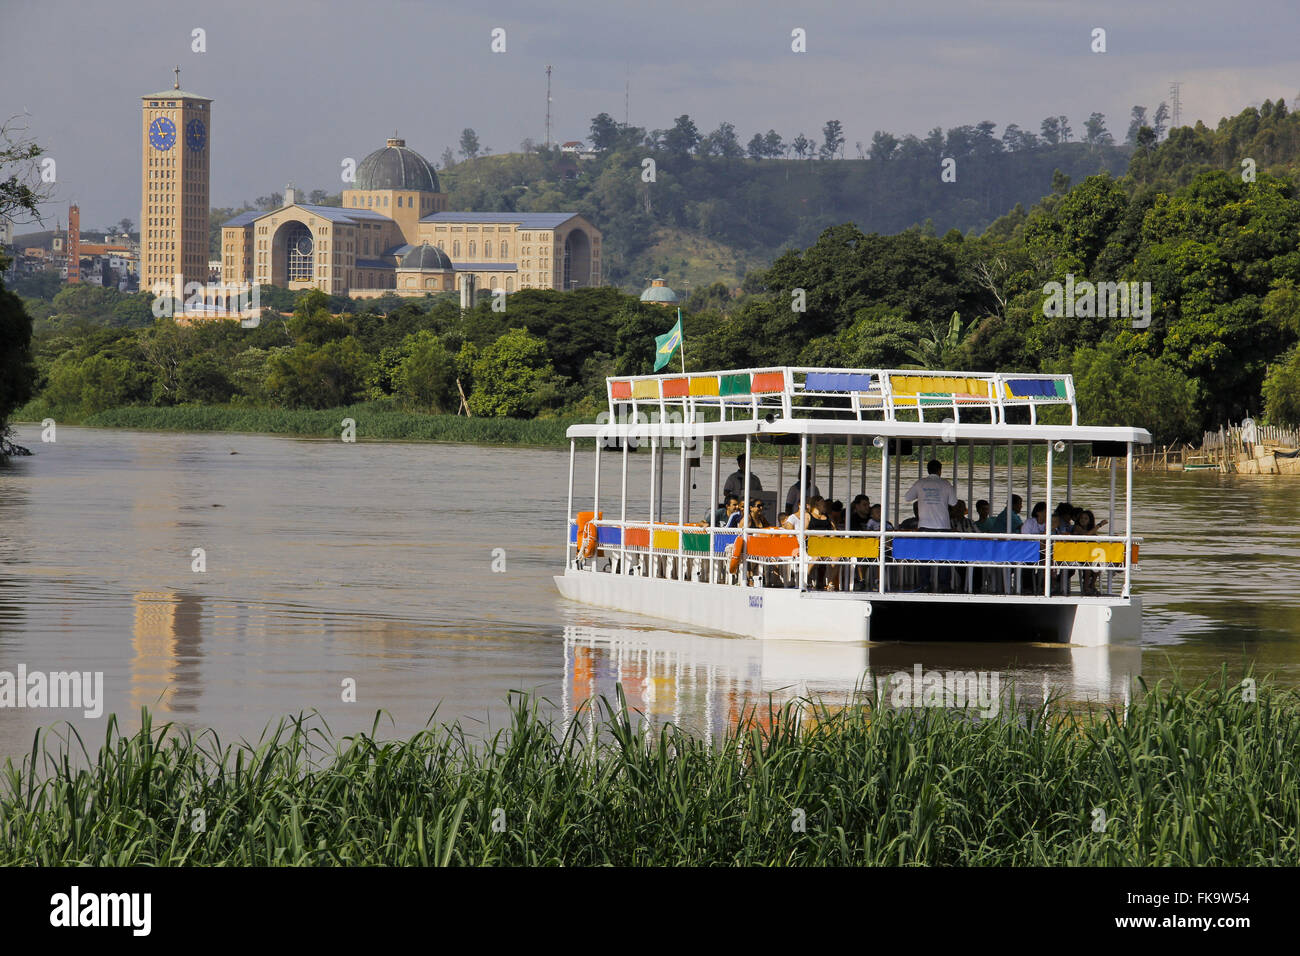 Tourists on ferry ride on the Rio Paraiba do Sul with New Basilica in the background - Stock Image